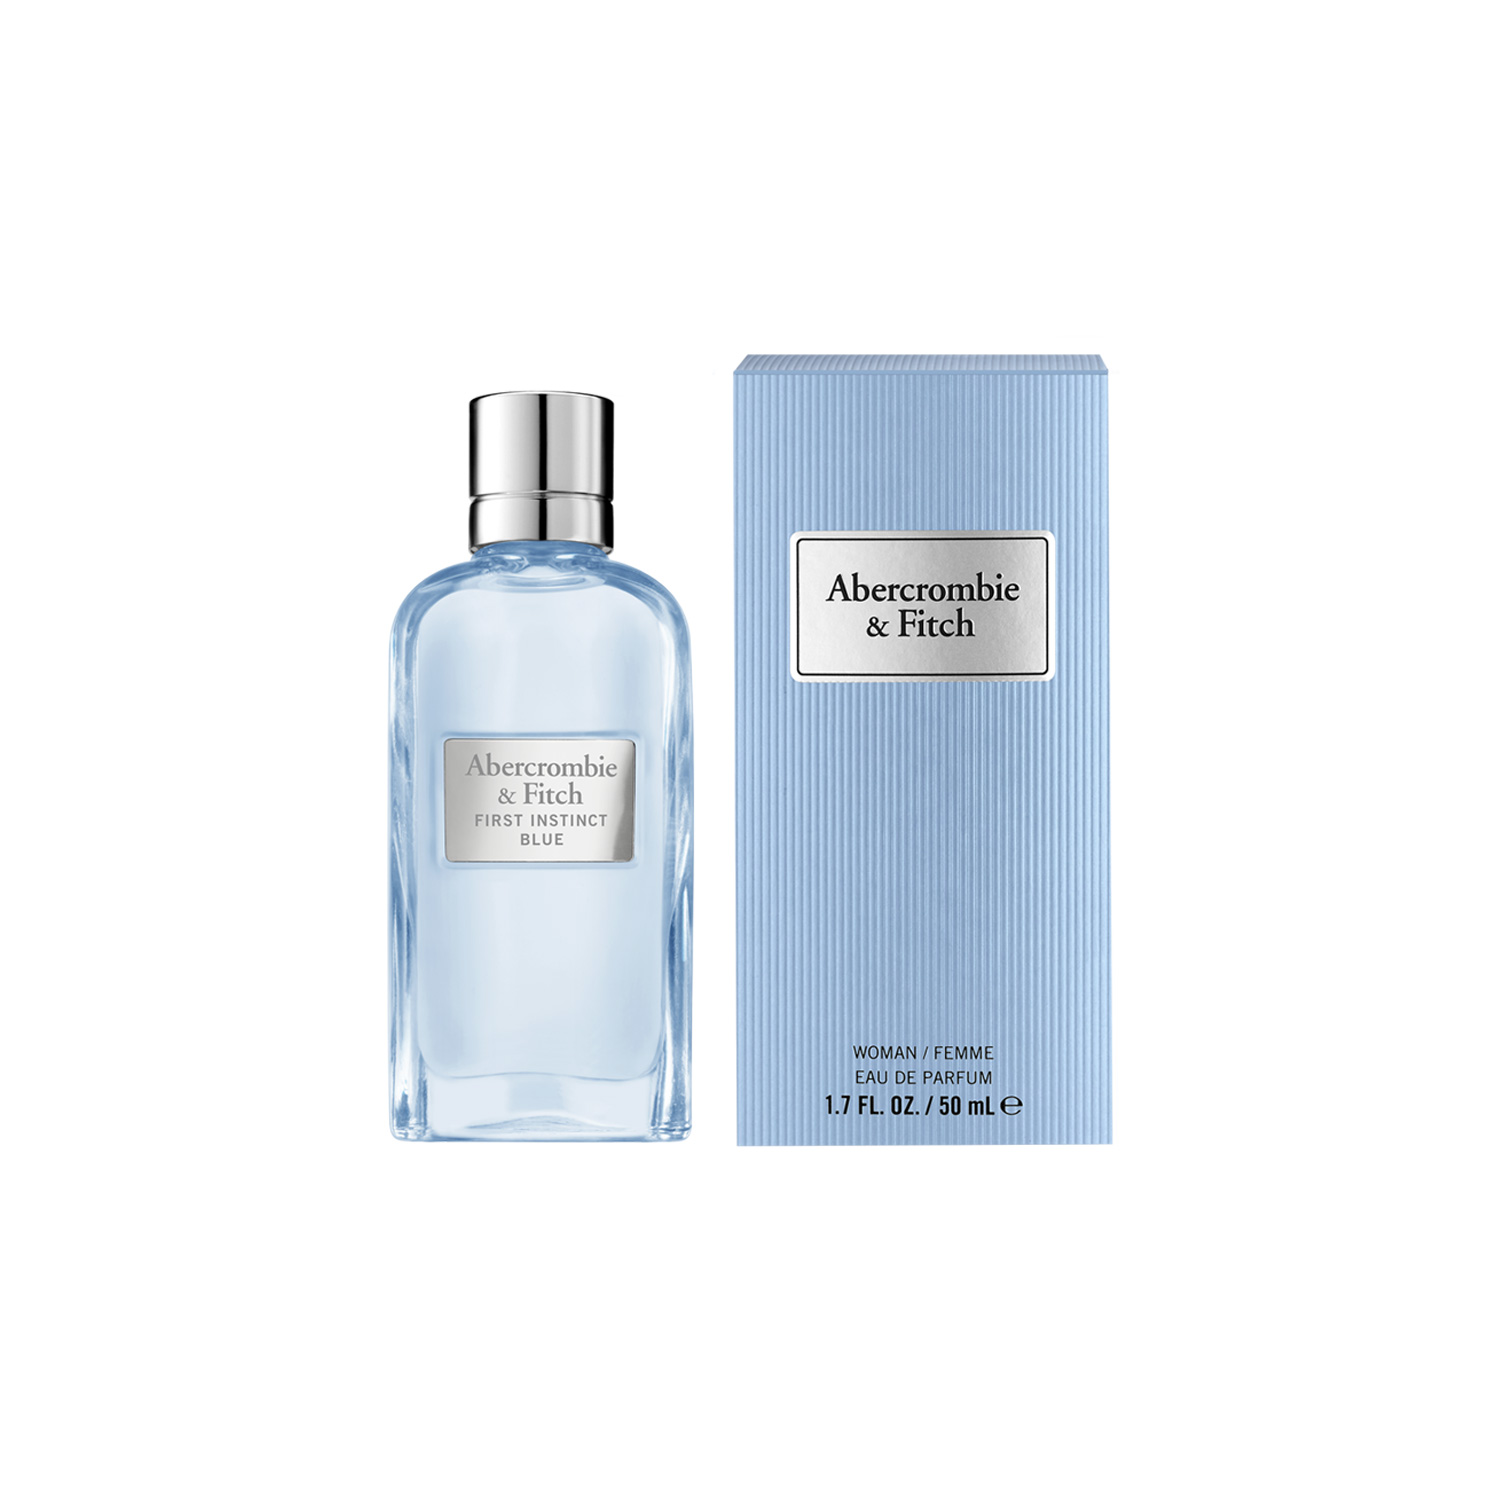 Купить Парфюмерная вода Abercrombie & Fitch, Abercrombie & Fitch First Instinct Blue Woman 50ml, США